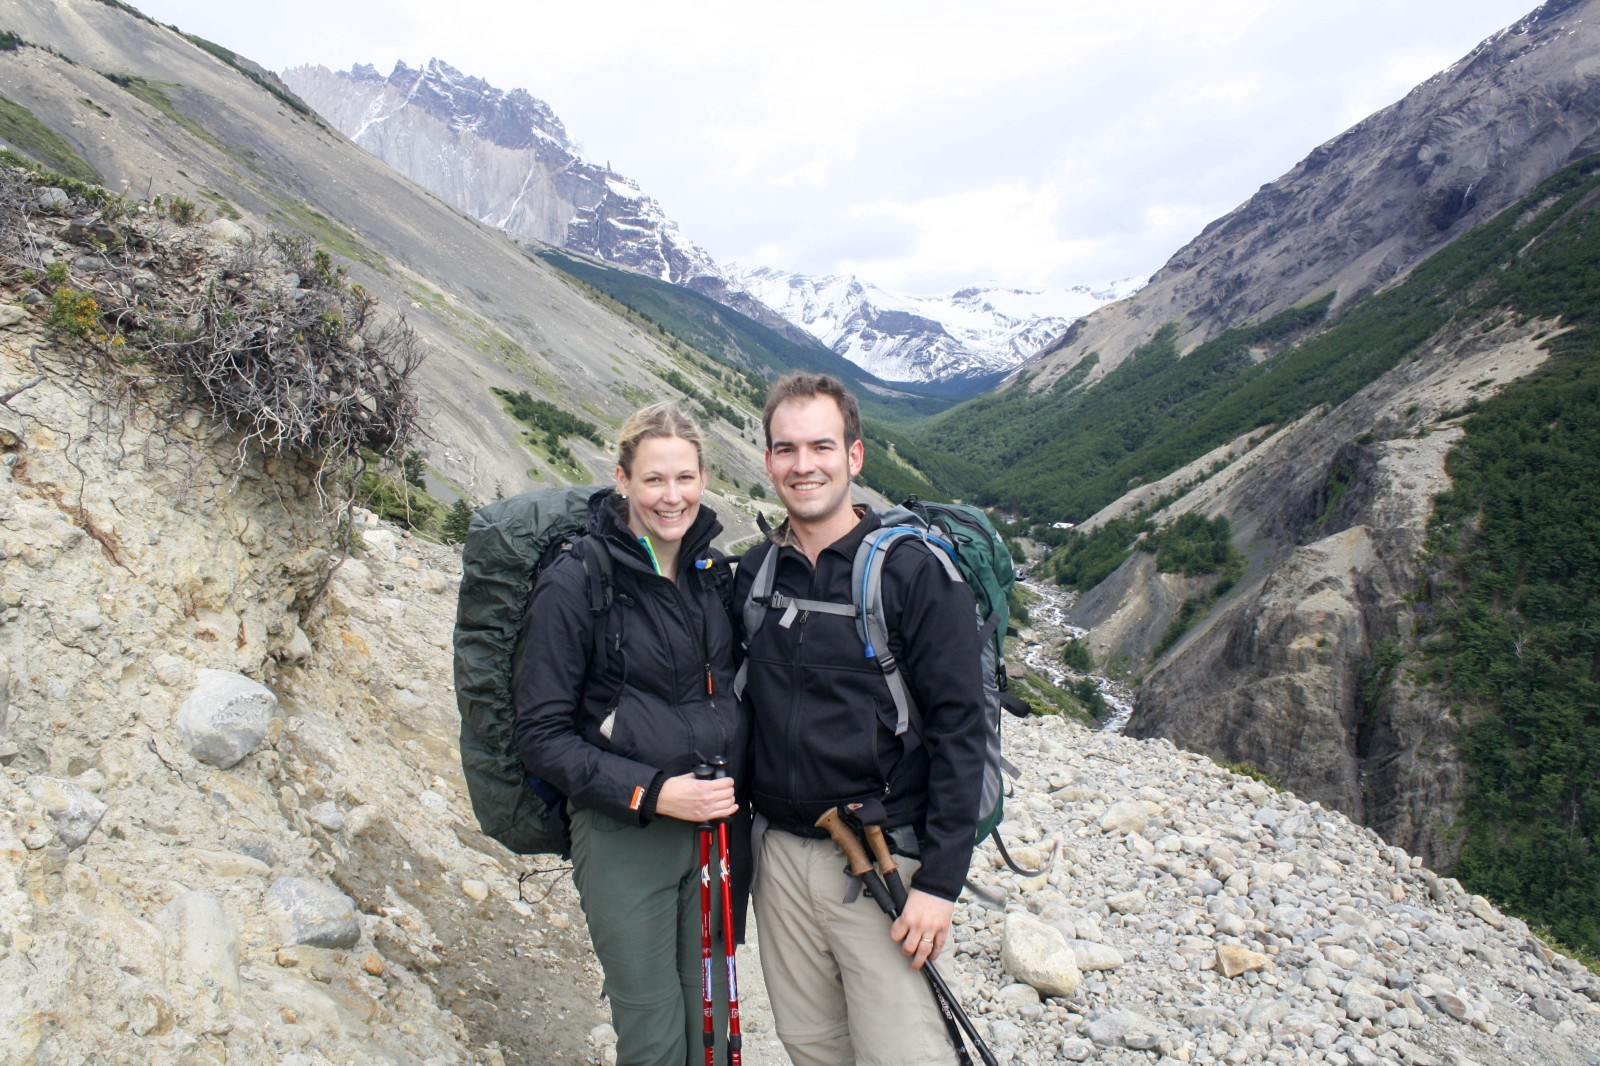 dropbox seattle office mt. Matt And His Wife Lori Hiking In Torres Del Paine National Park, Patagonia. Dropbox Seattle Office Mt